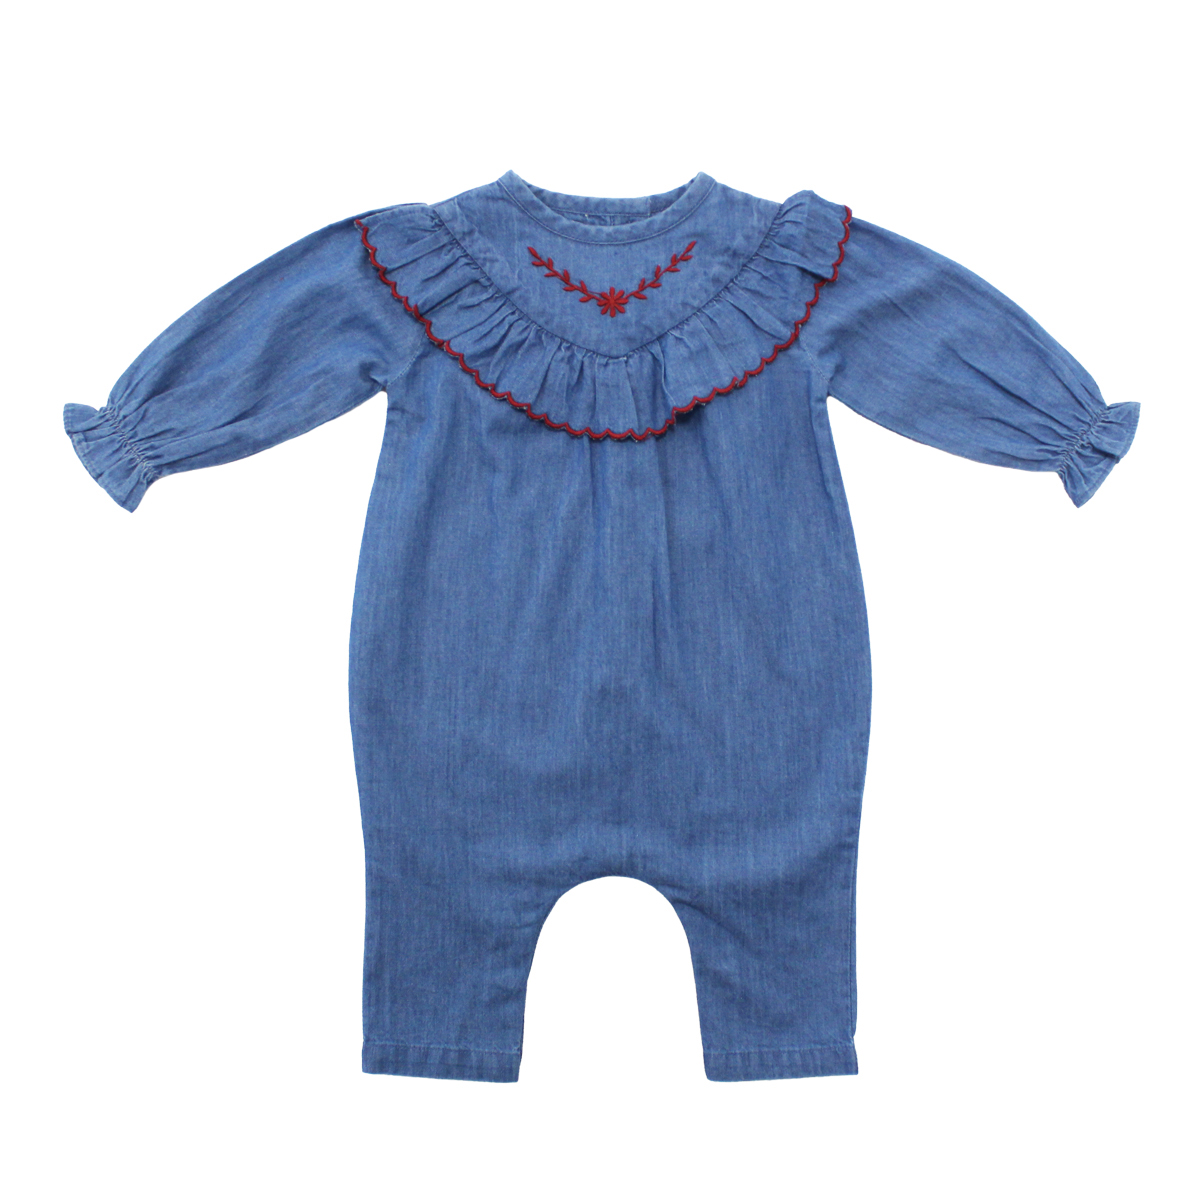 Louis Louise Alizee Overall Romper in Chambray